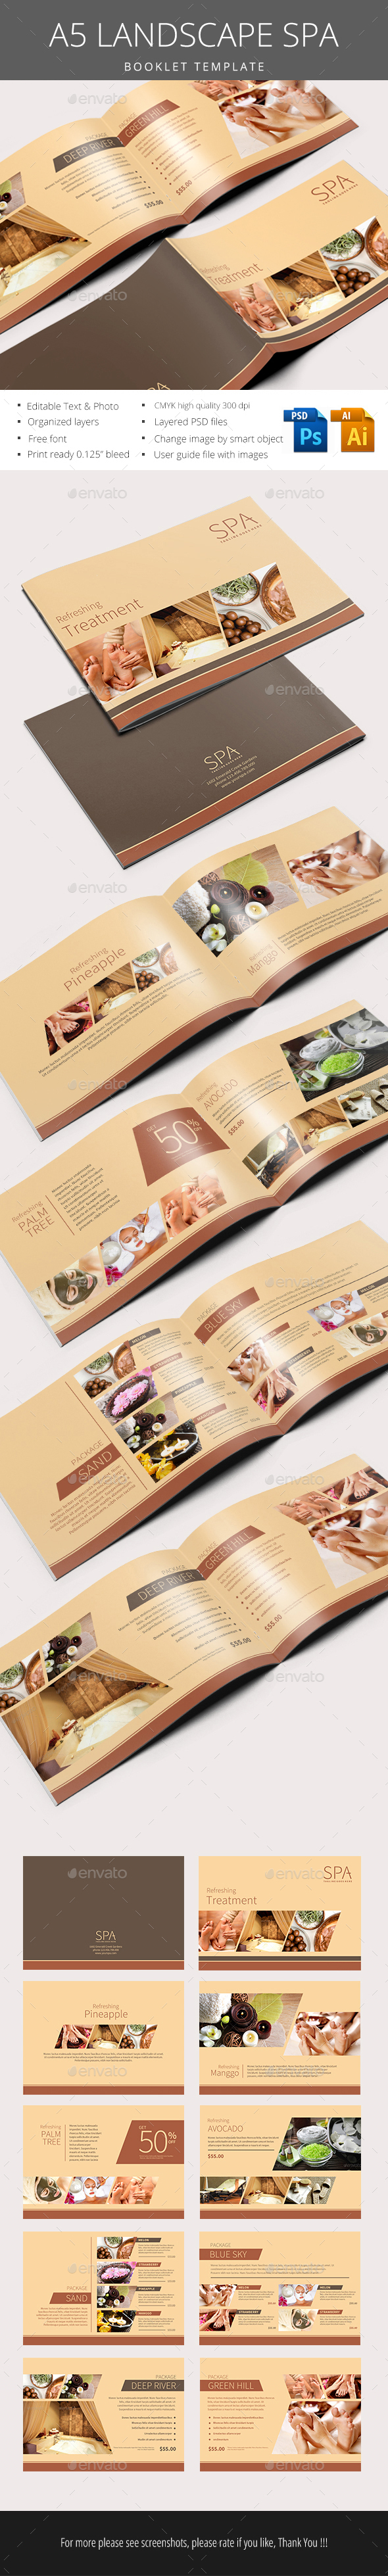 A5 Landscape Spa Brochure - Flyers Print Templates